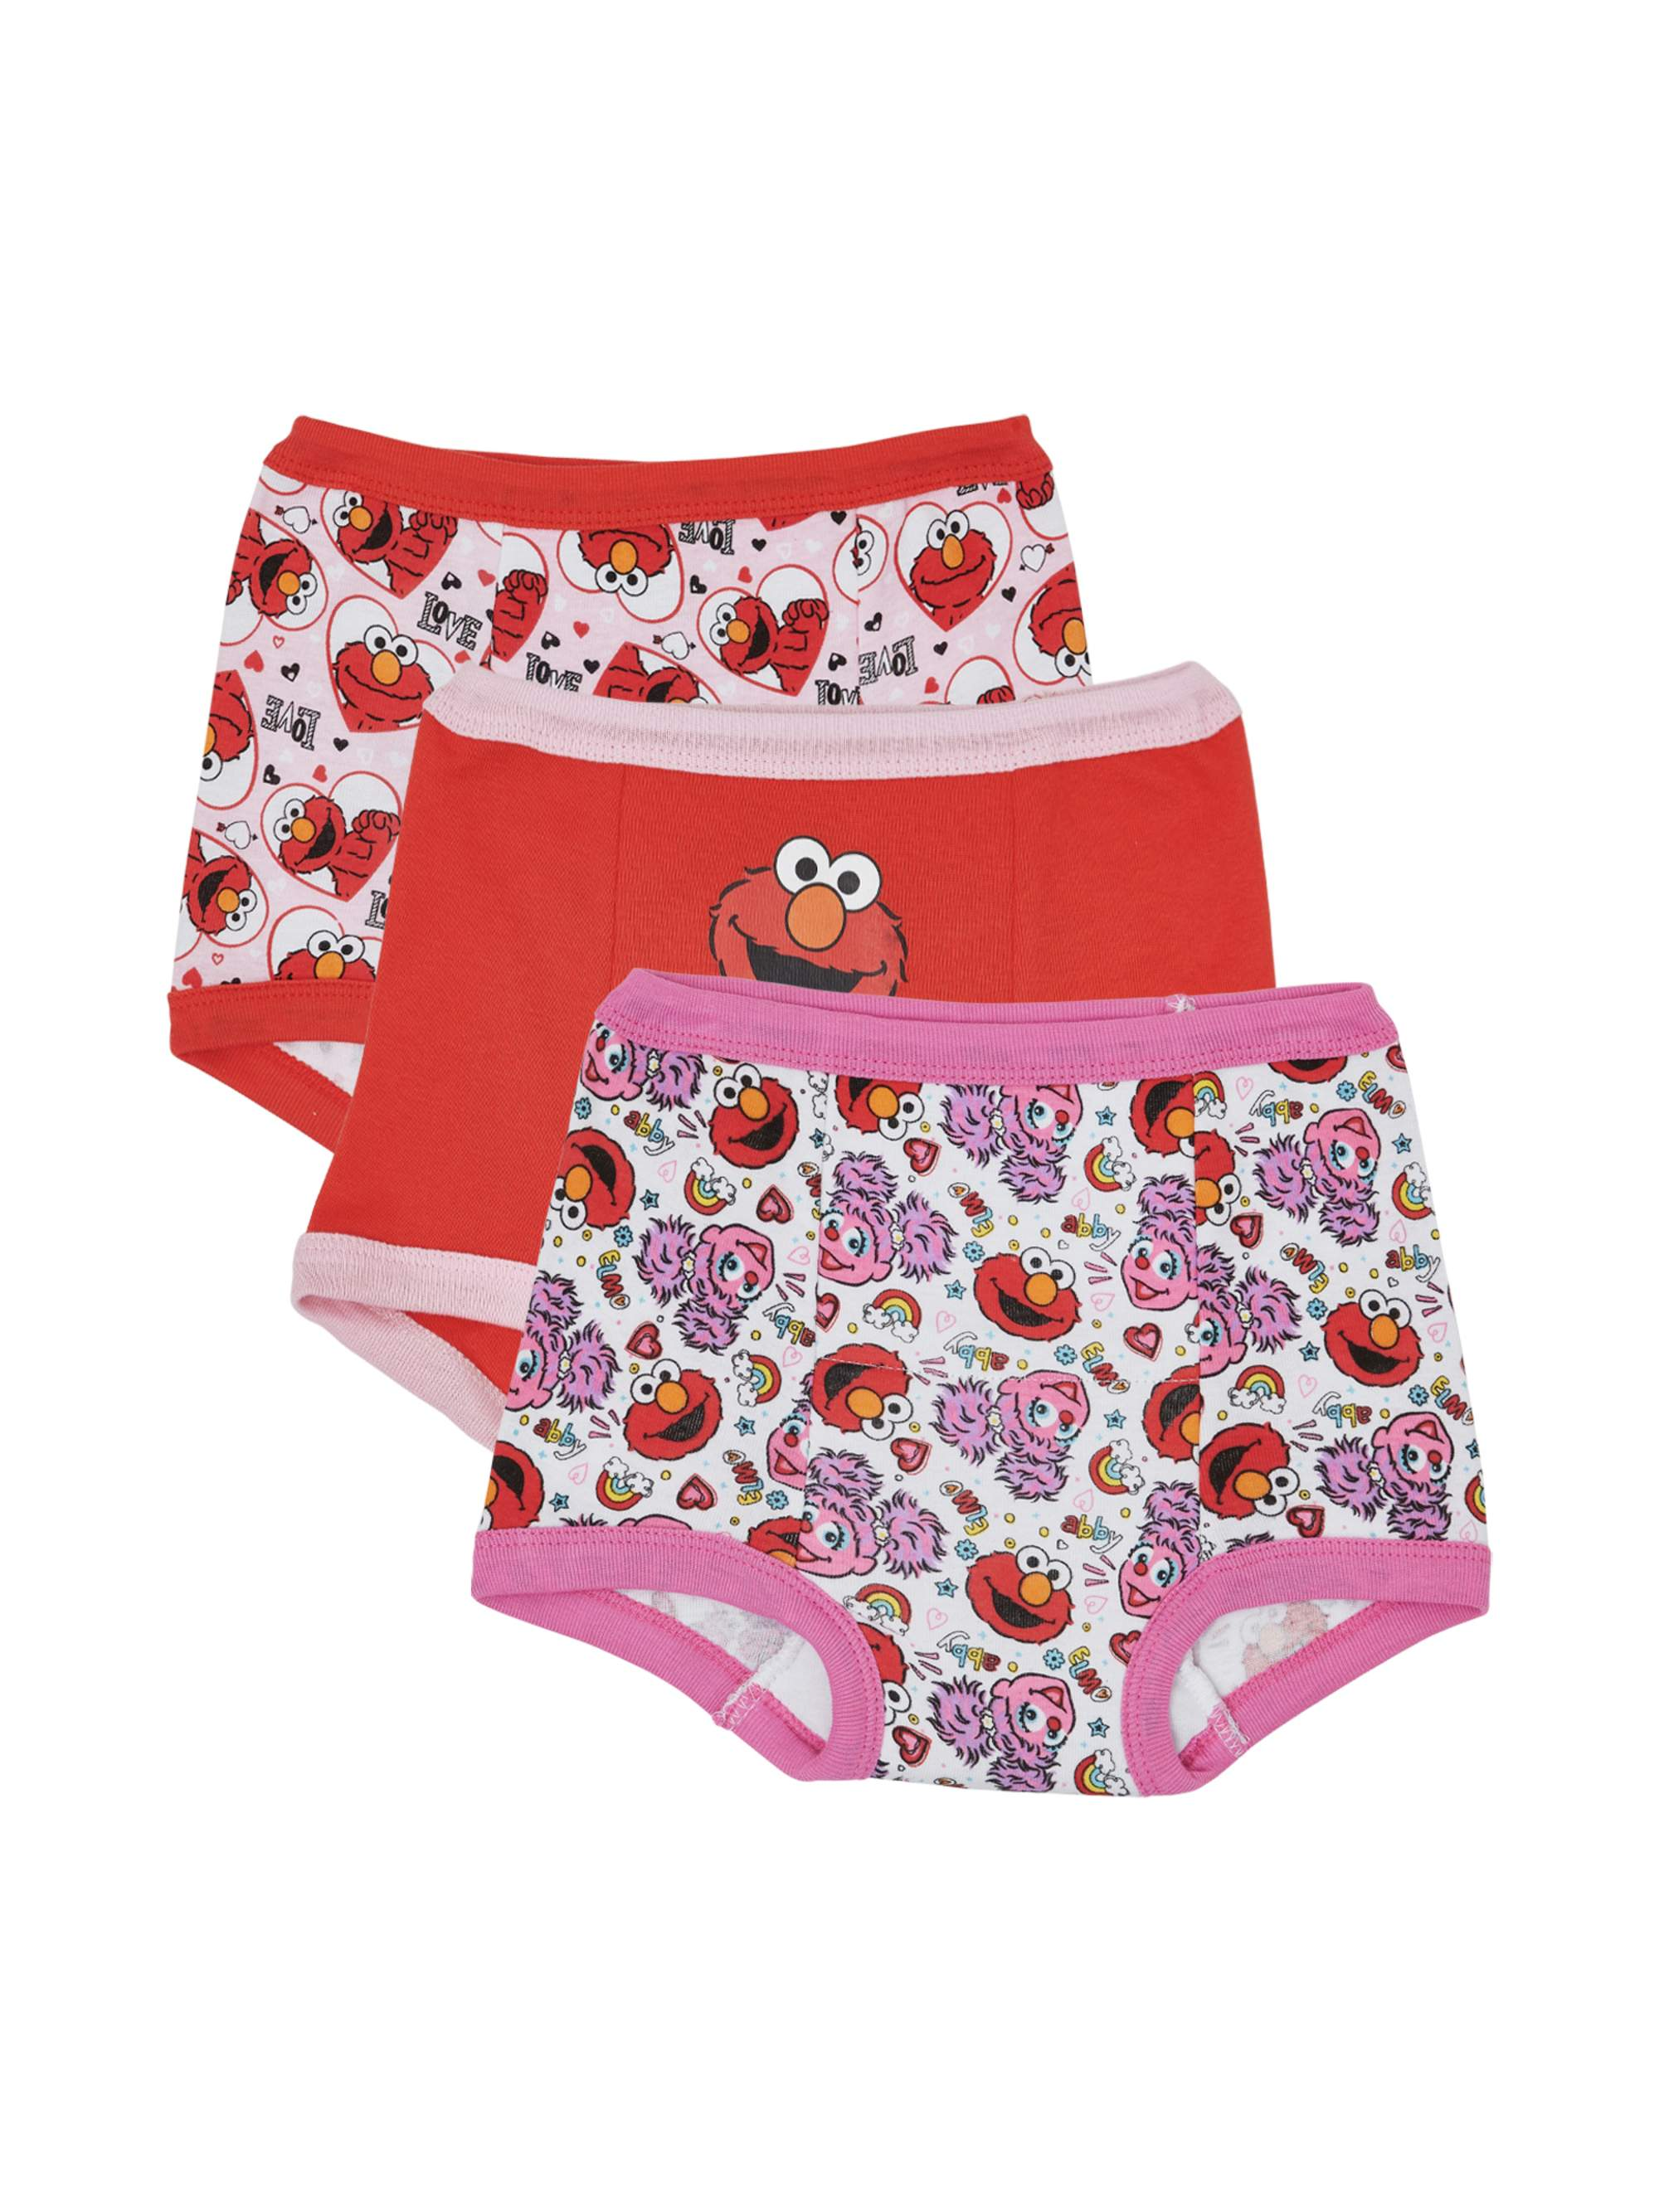 Elmo Girls' Training Pants, 3-Pack